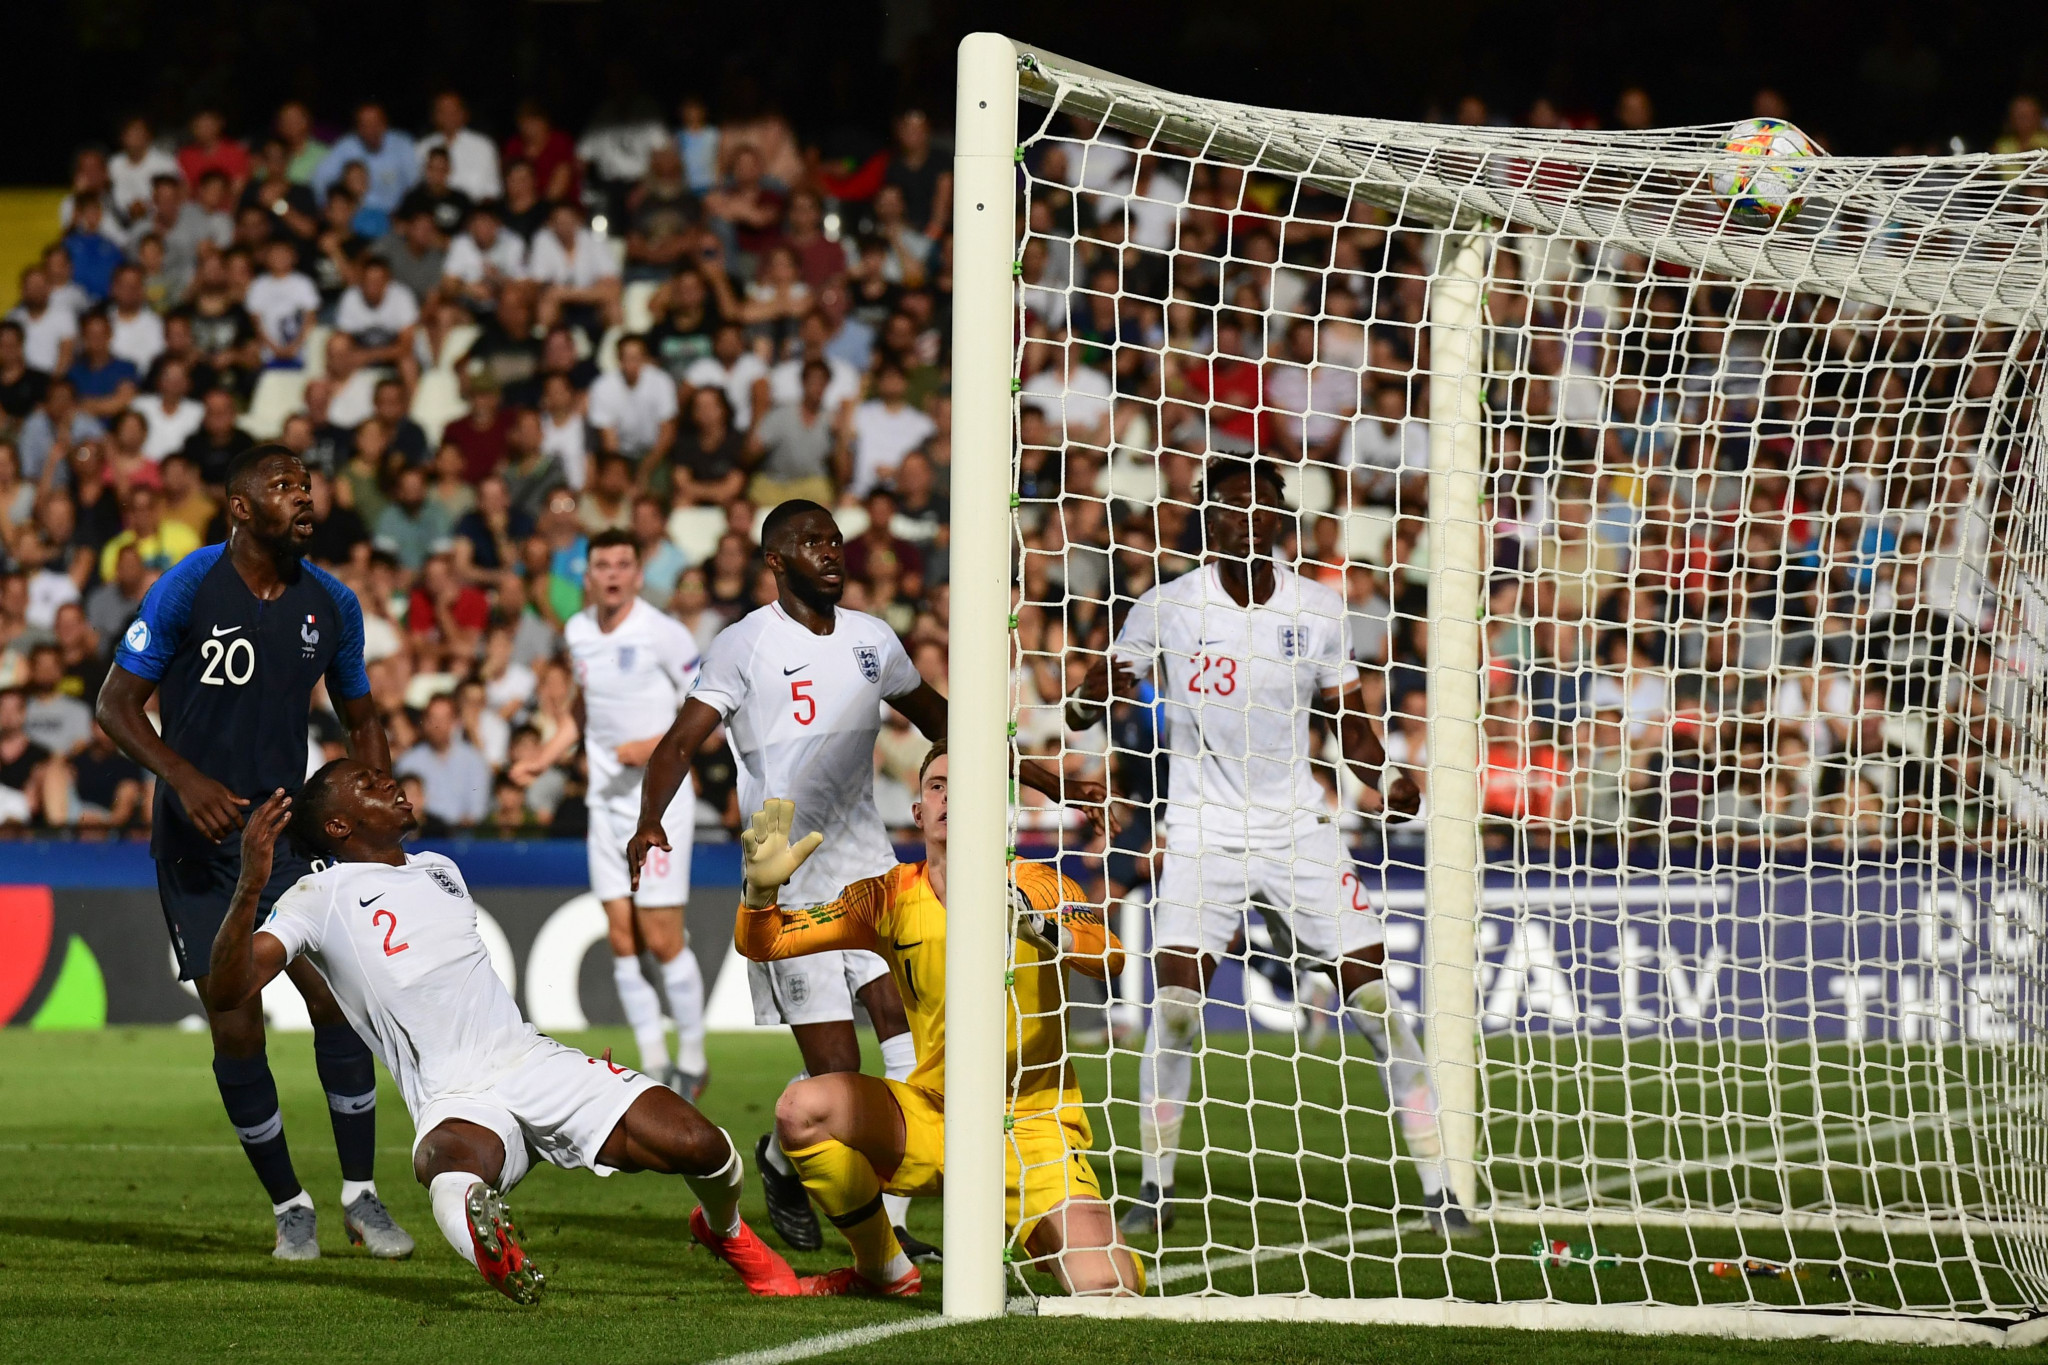 England's Aaron Wan-Bissaka scores an own goal deep into second-half stoppage time ©Getty Images